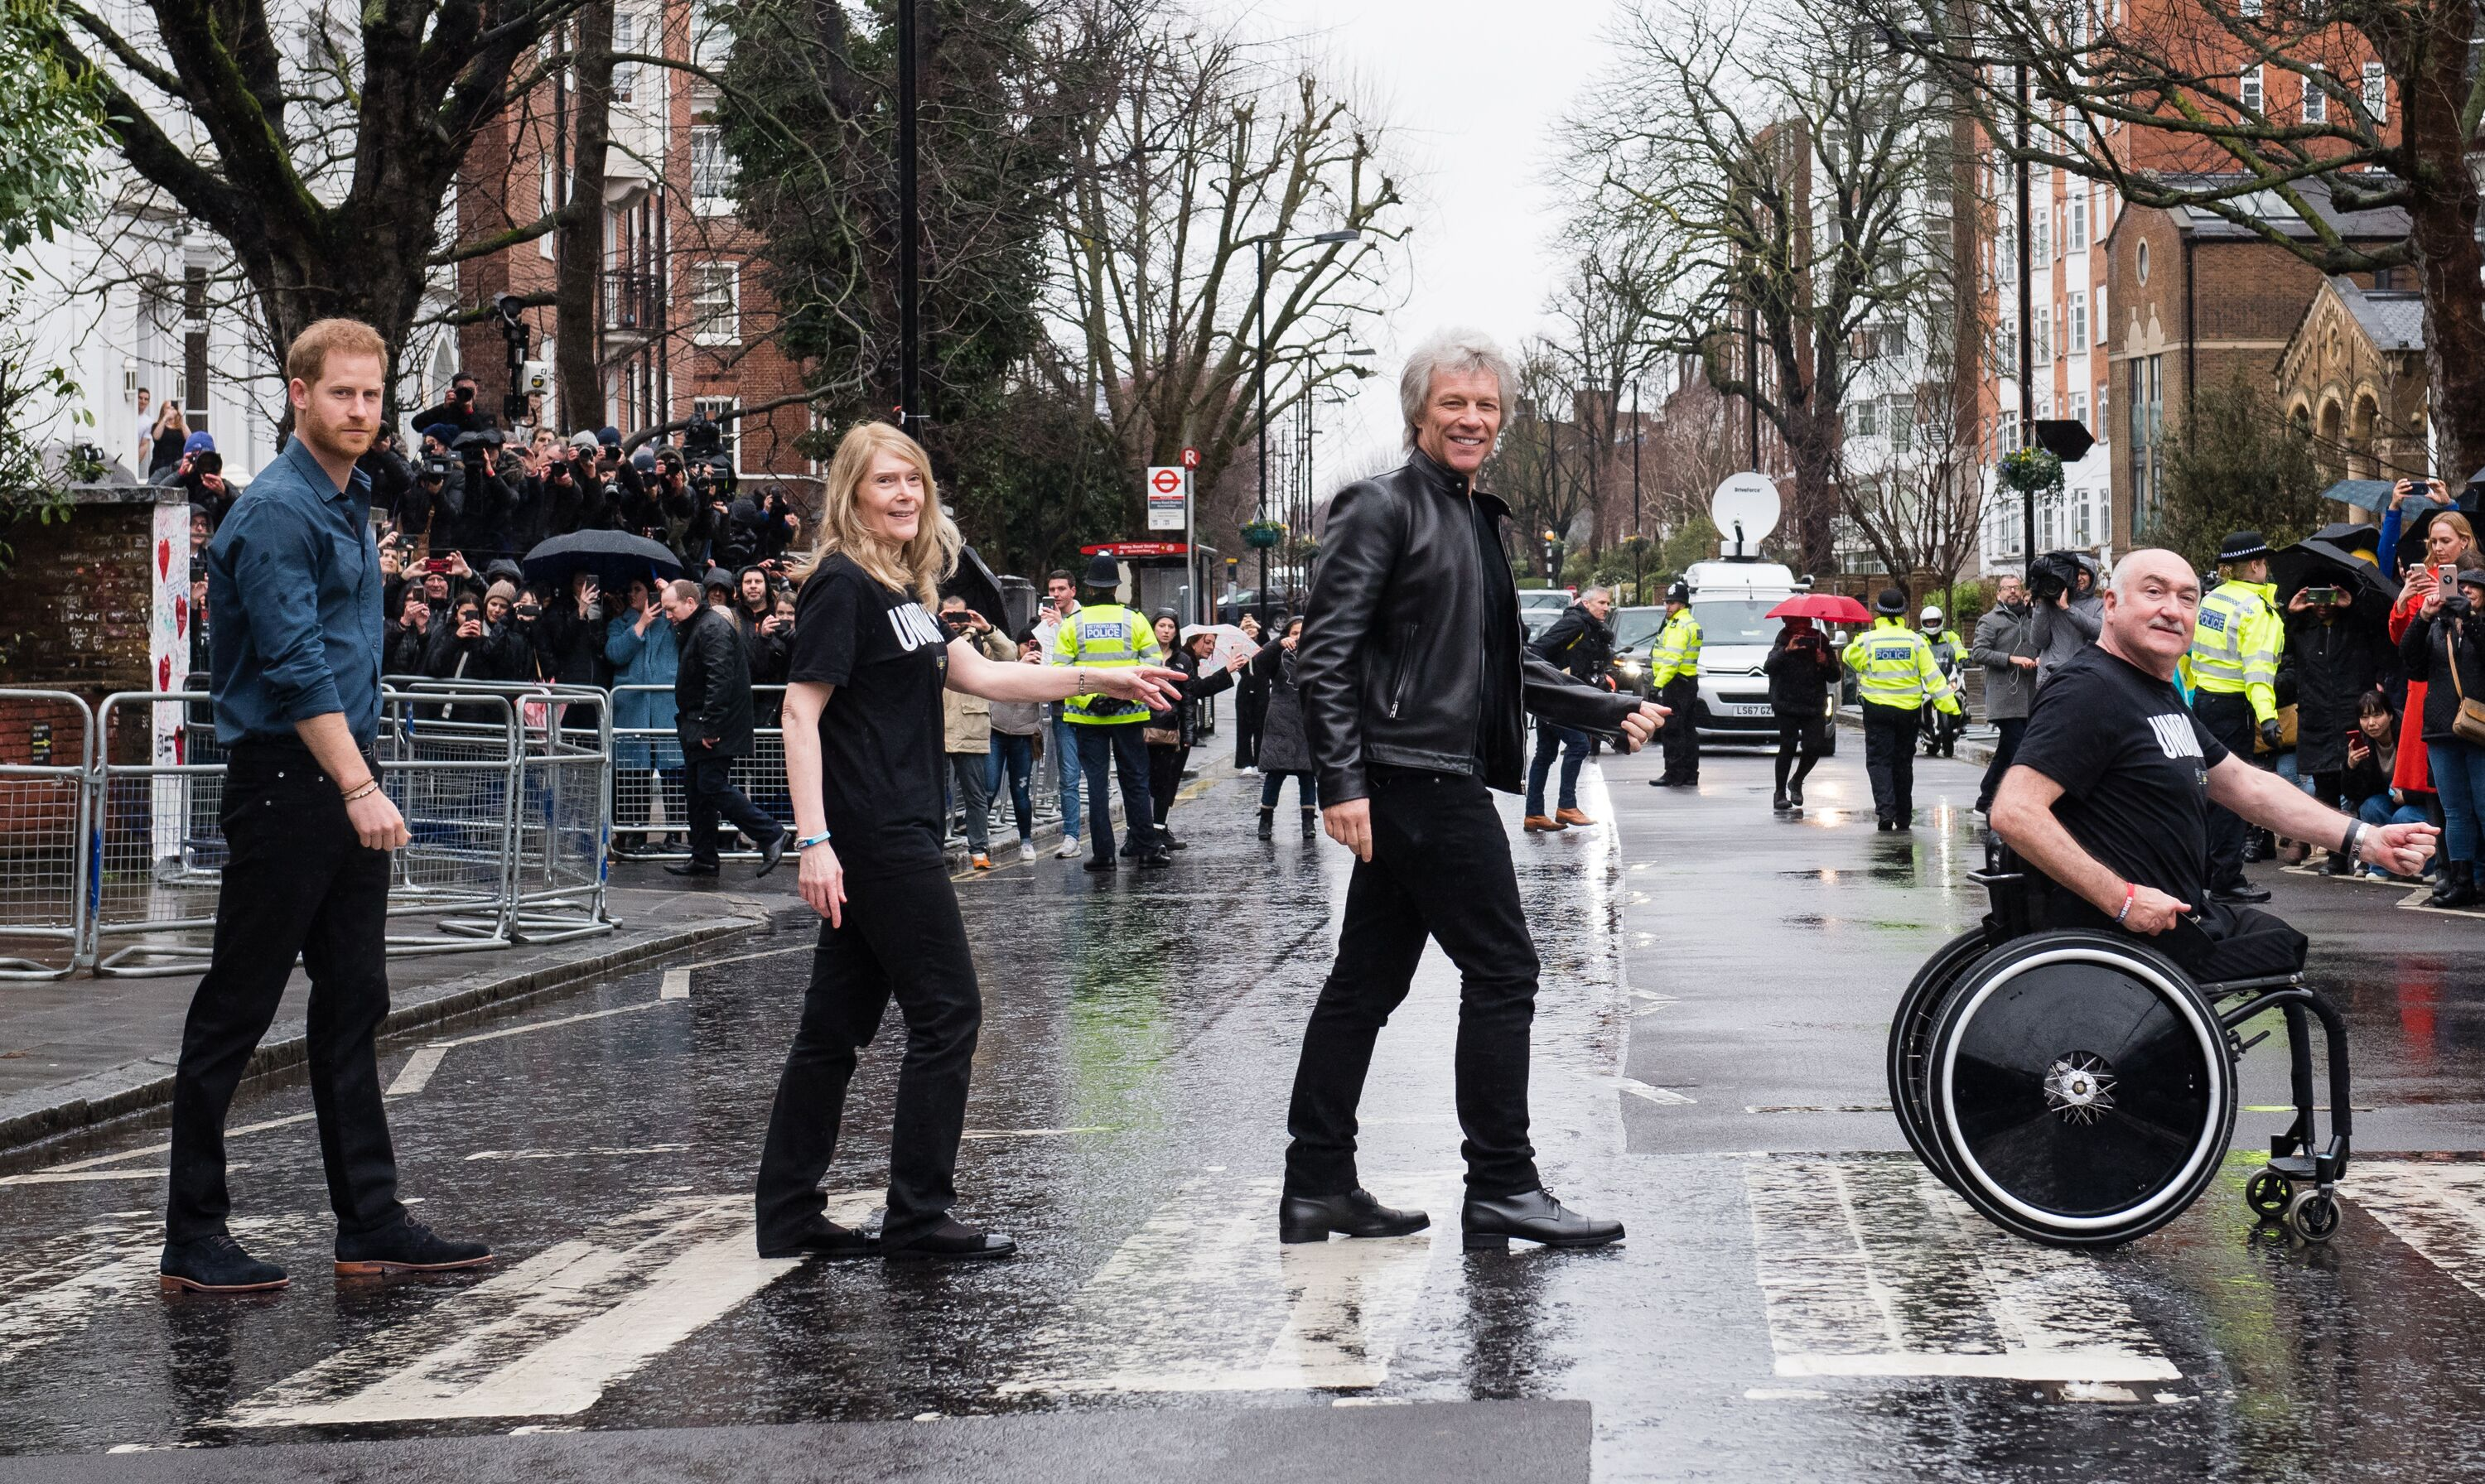 Prince Harry (L), Jon Bon Jovi (second right), and members of the Invictus Games Choir pose at Abbey Road zebra crossing on February 28, 2020, in London, England | Photo: Samir Hussein/WireImage/Getty Images